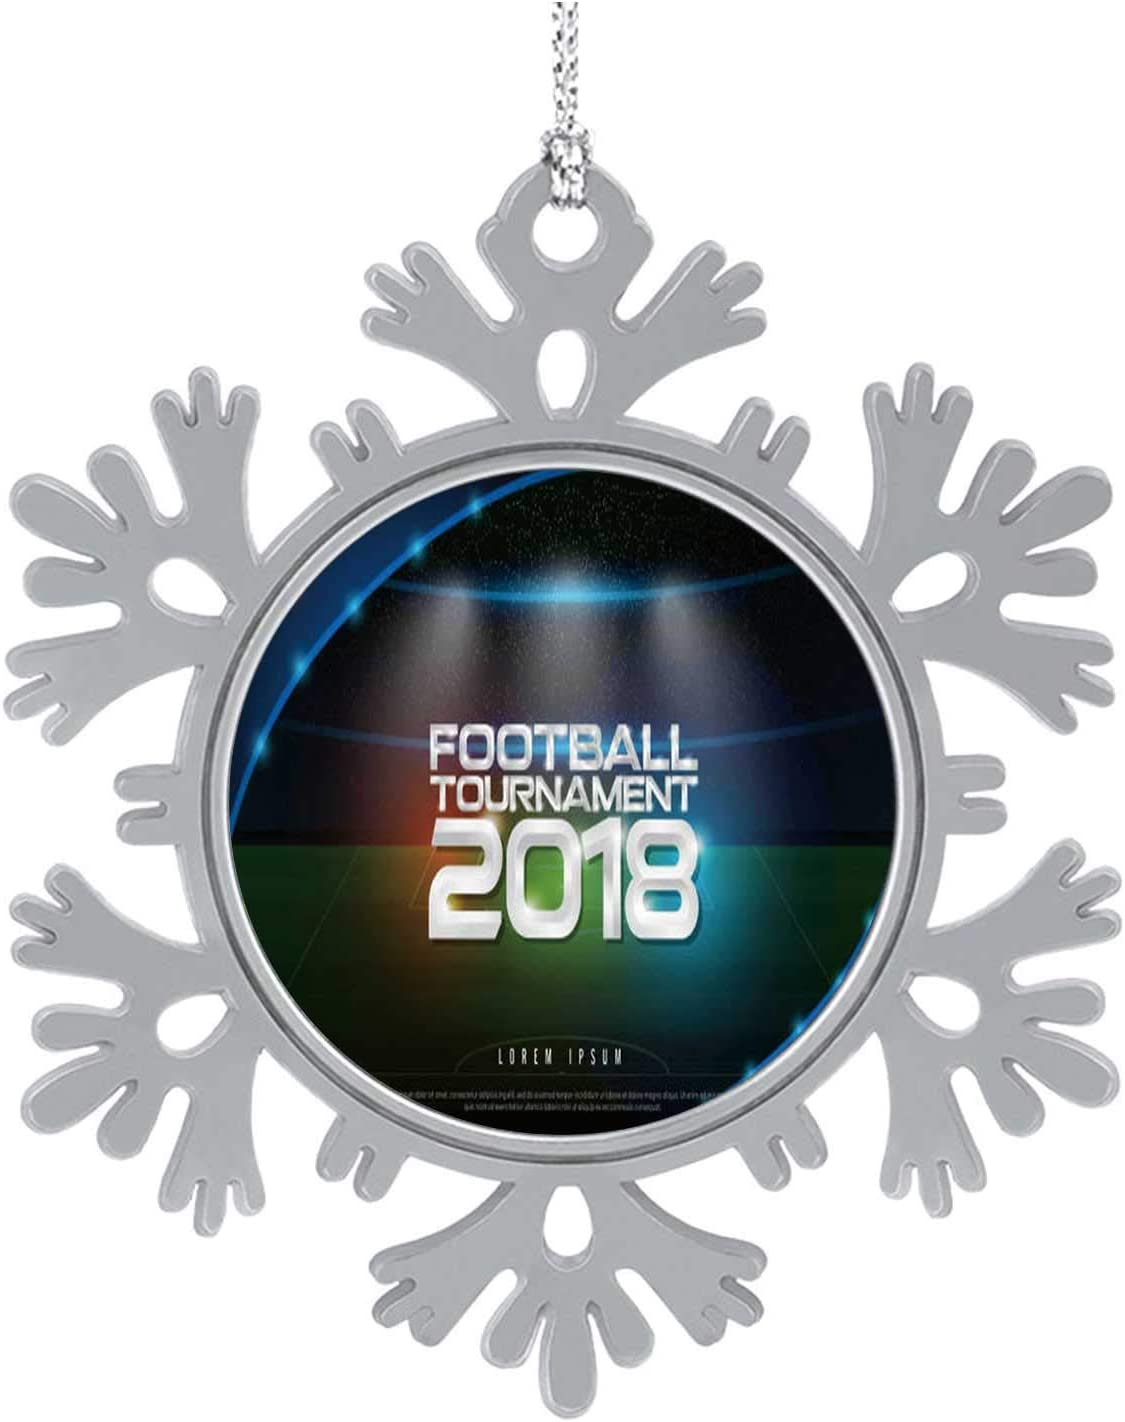 C COABALLA 2018 World - Ship Football Tournament Cup on Stadium -.Soccer icon,Hanging Ornament Decoration Kit,Hanging for Xmas Holiday Party Decor Broadcast Graphic Template - Russia 3PCS